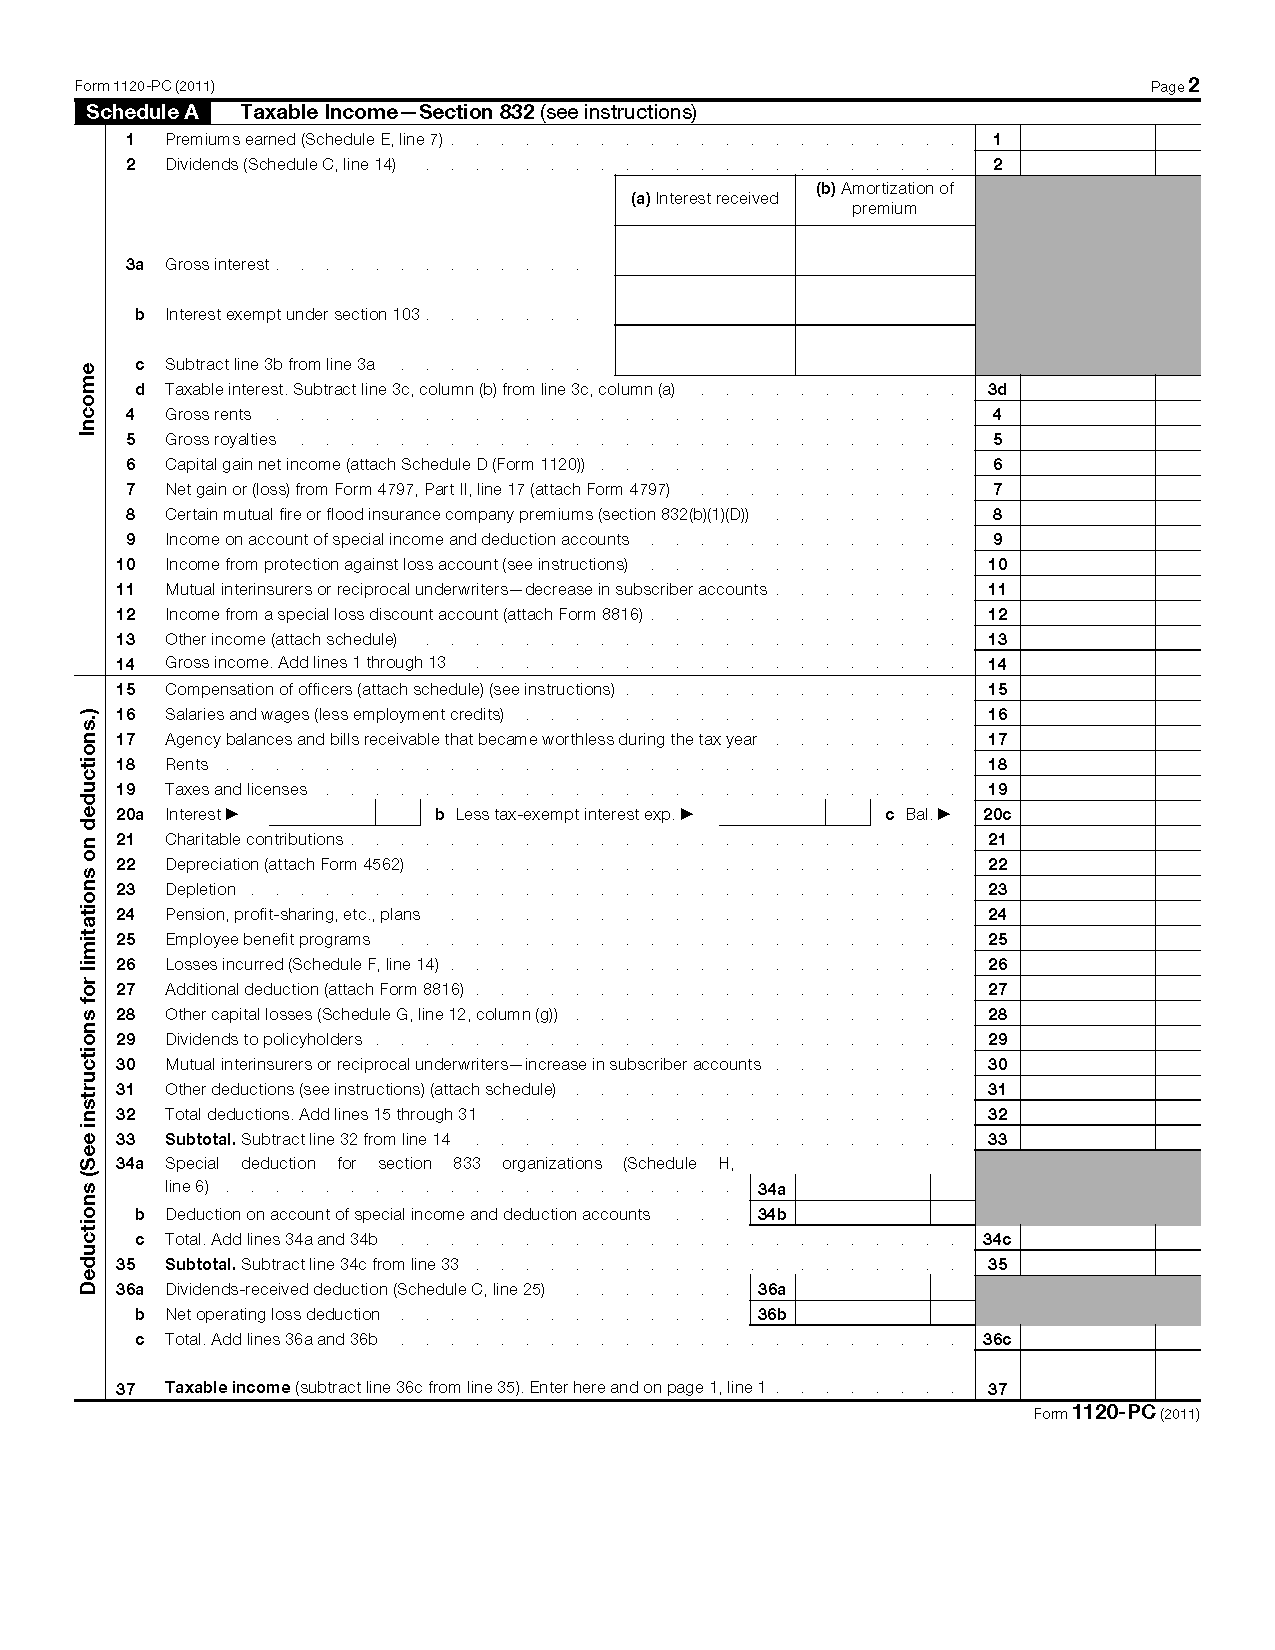 Form 1120 pc us property and casualty insurance company income form 1120 pc us property and casualty insurance company income tax return falaconquin